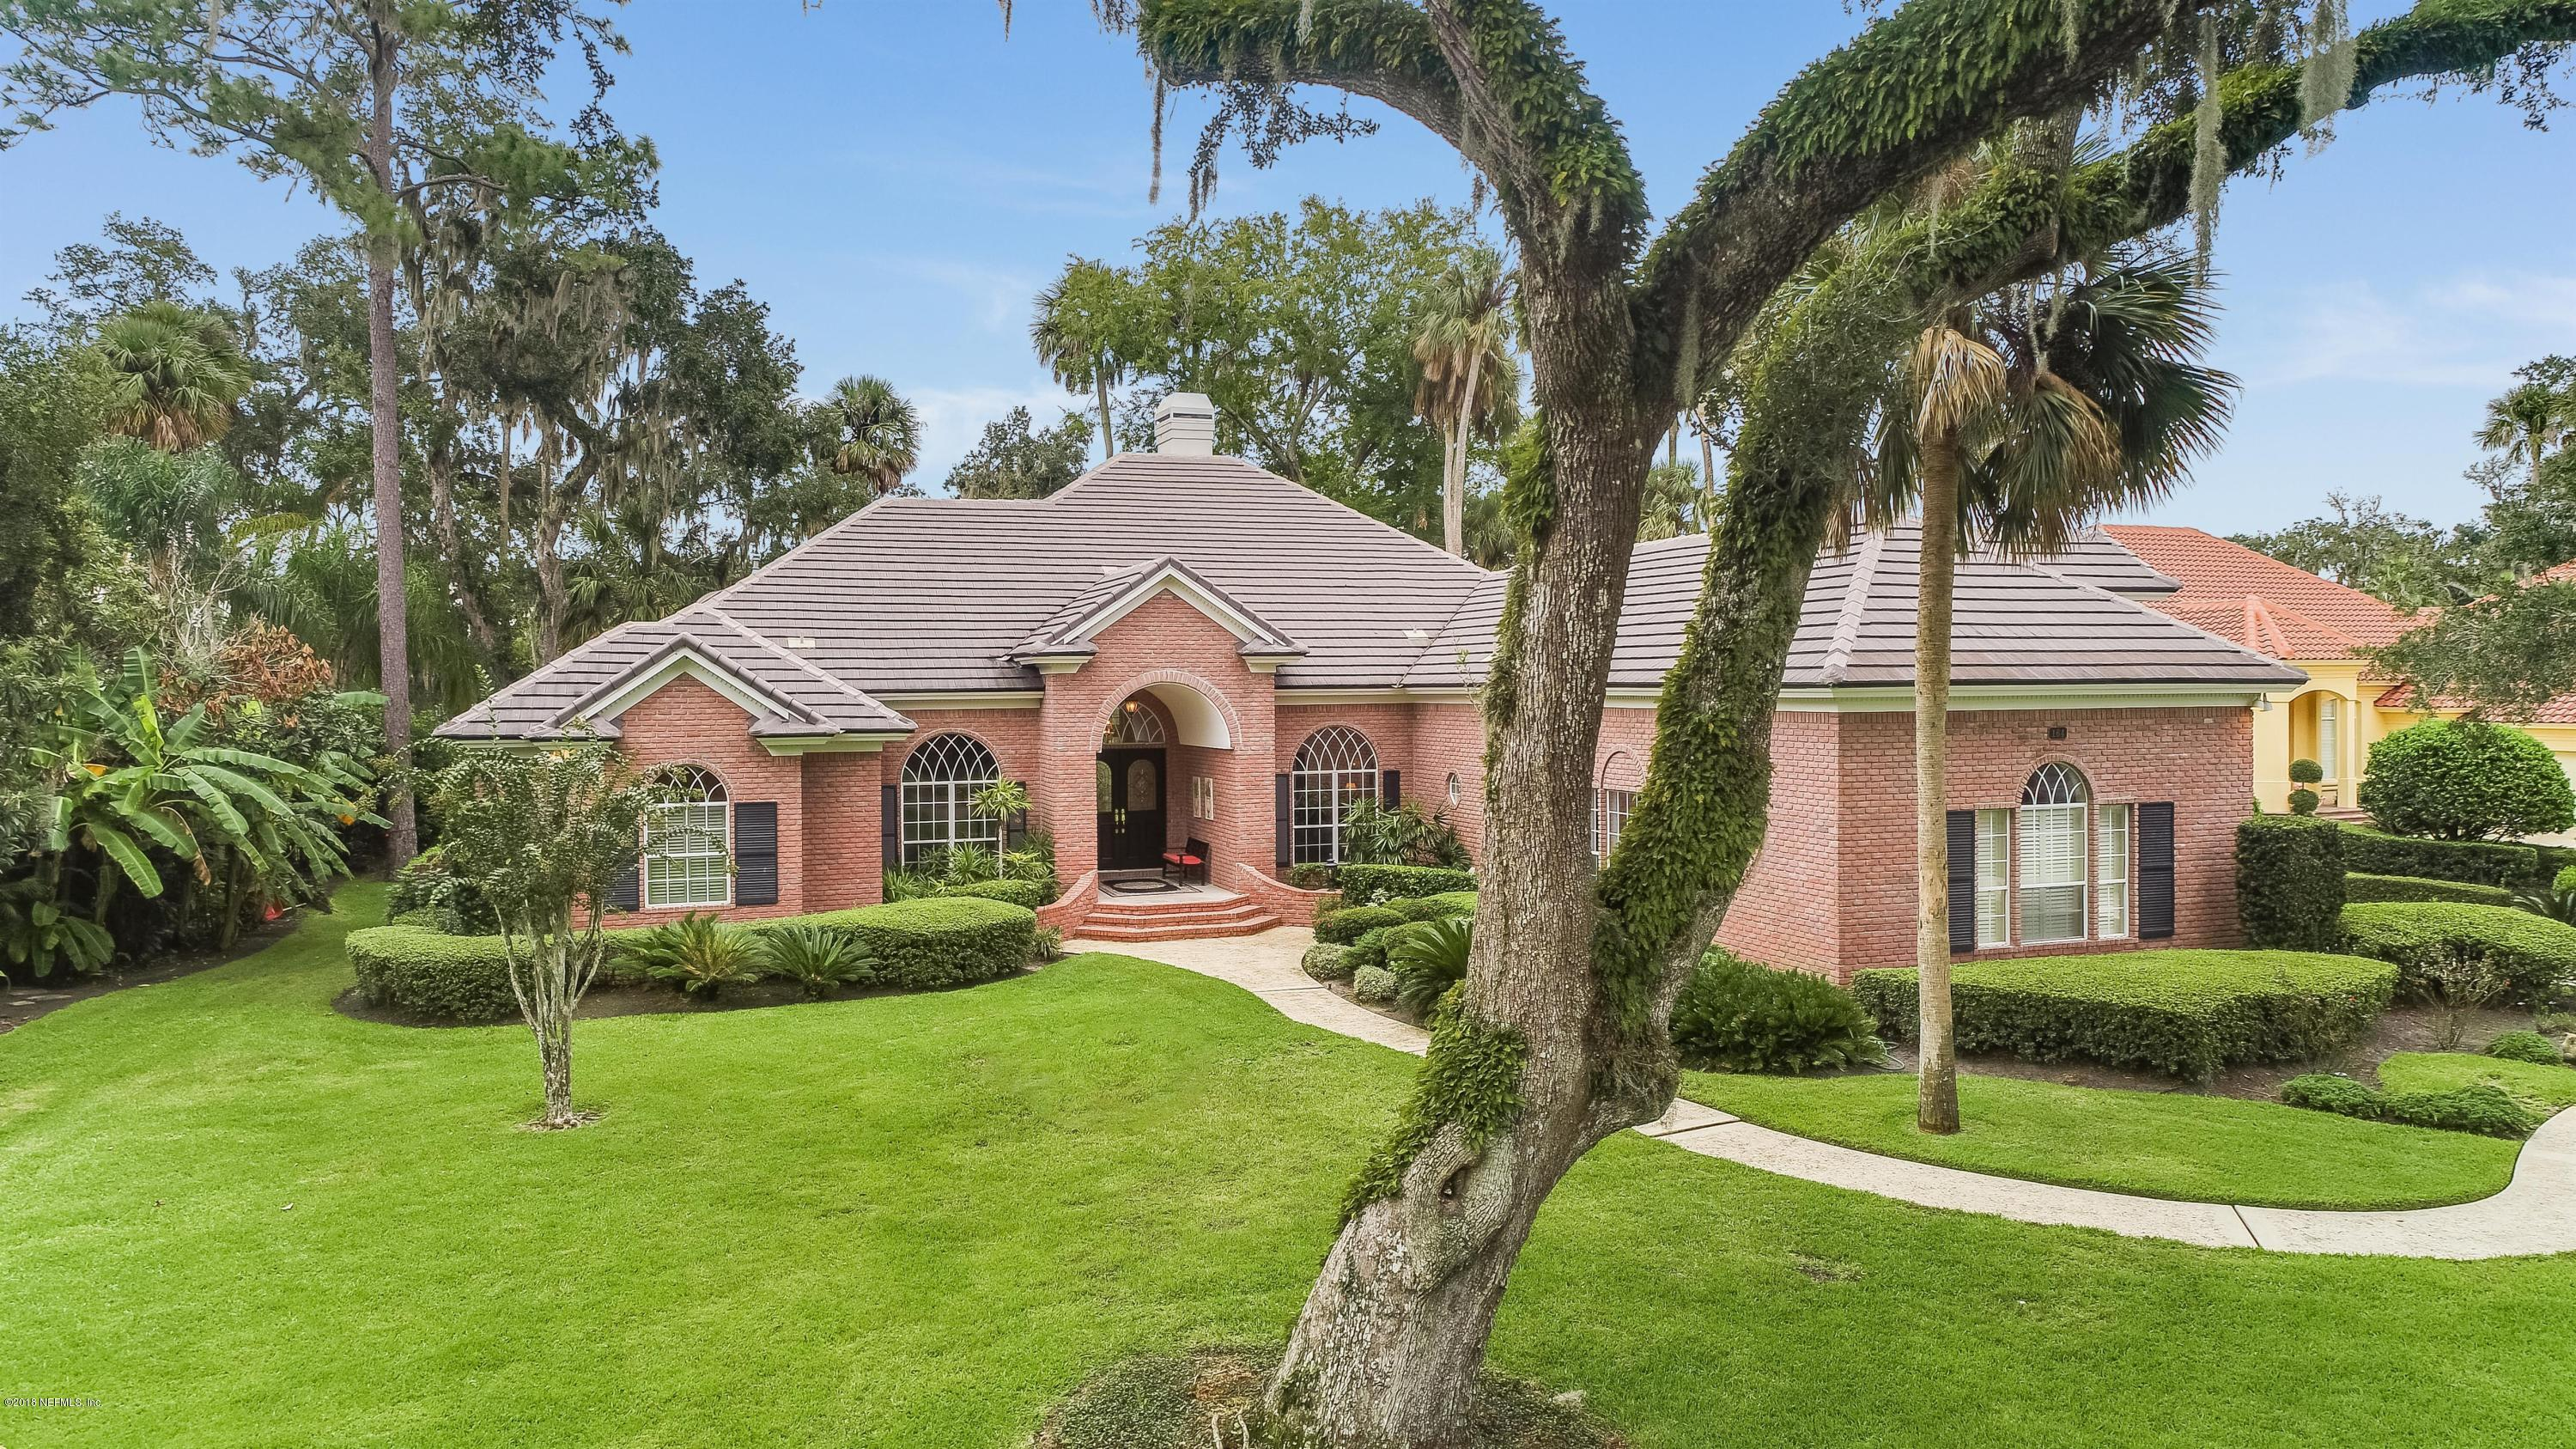 164 GOVERNORS, PONTE VEDRA BEACH, FLORIDA 32082, 4 Bedrooms Bedrooms, ,5 BathroomsBathrooms,Residential - single family,For sale,GOVERNORS,963732